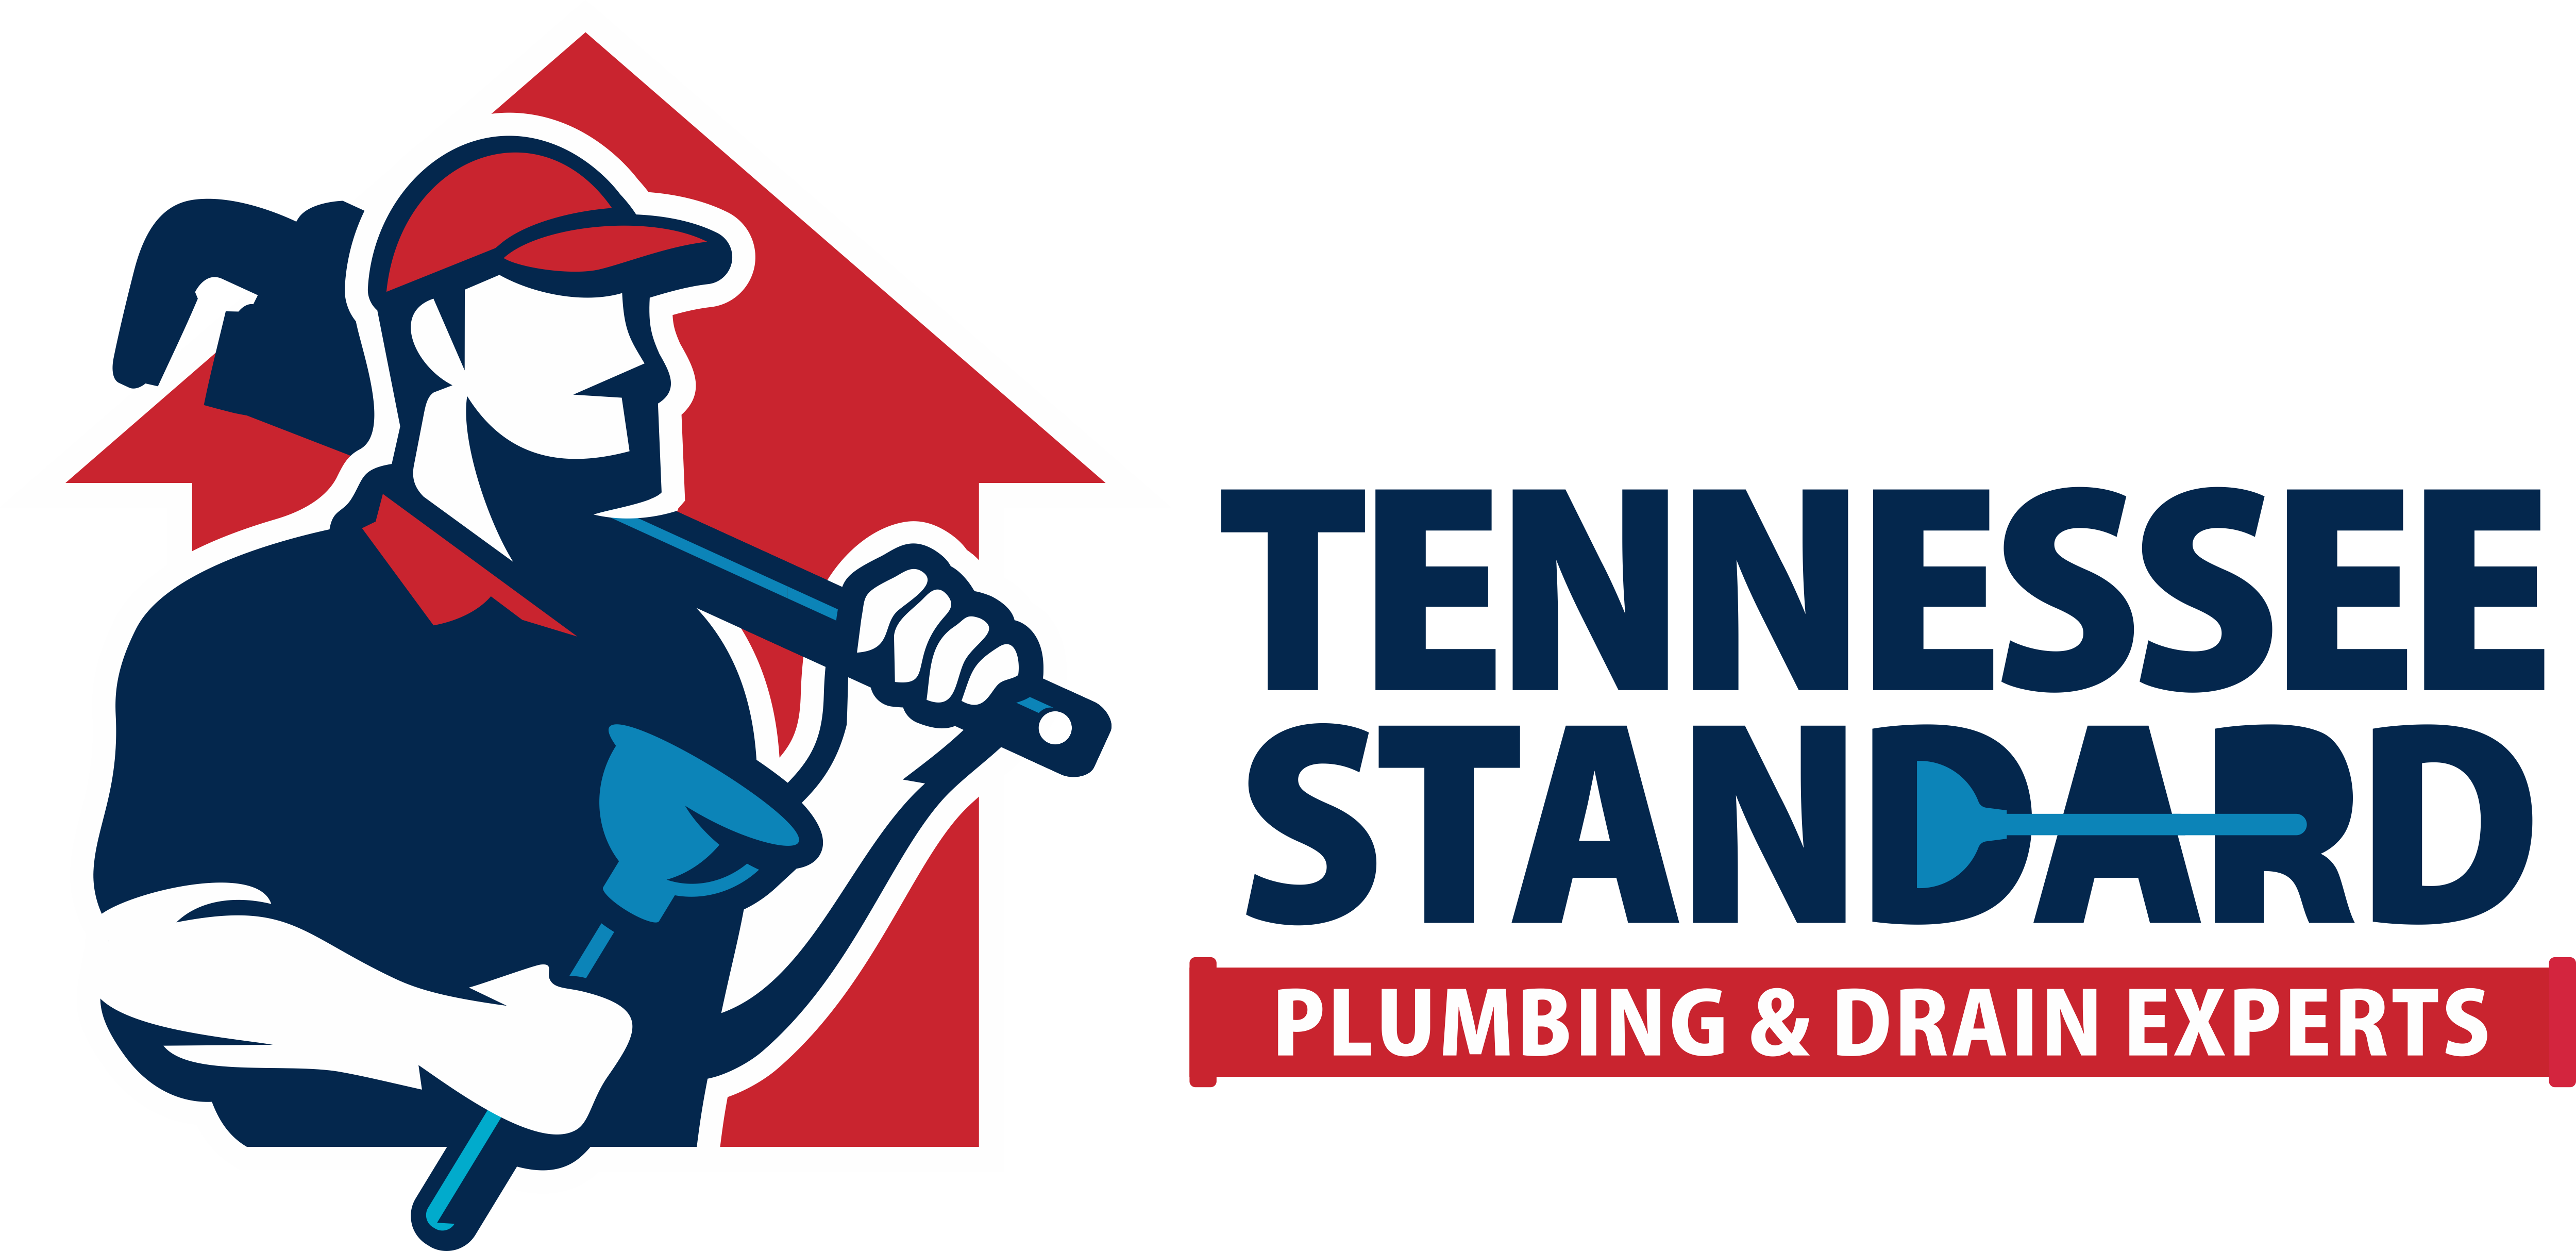 Create a Disruptive logo to Dominate the home services industry!